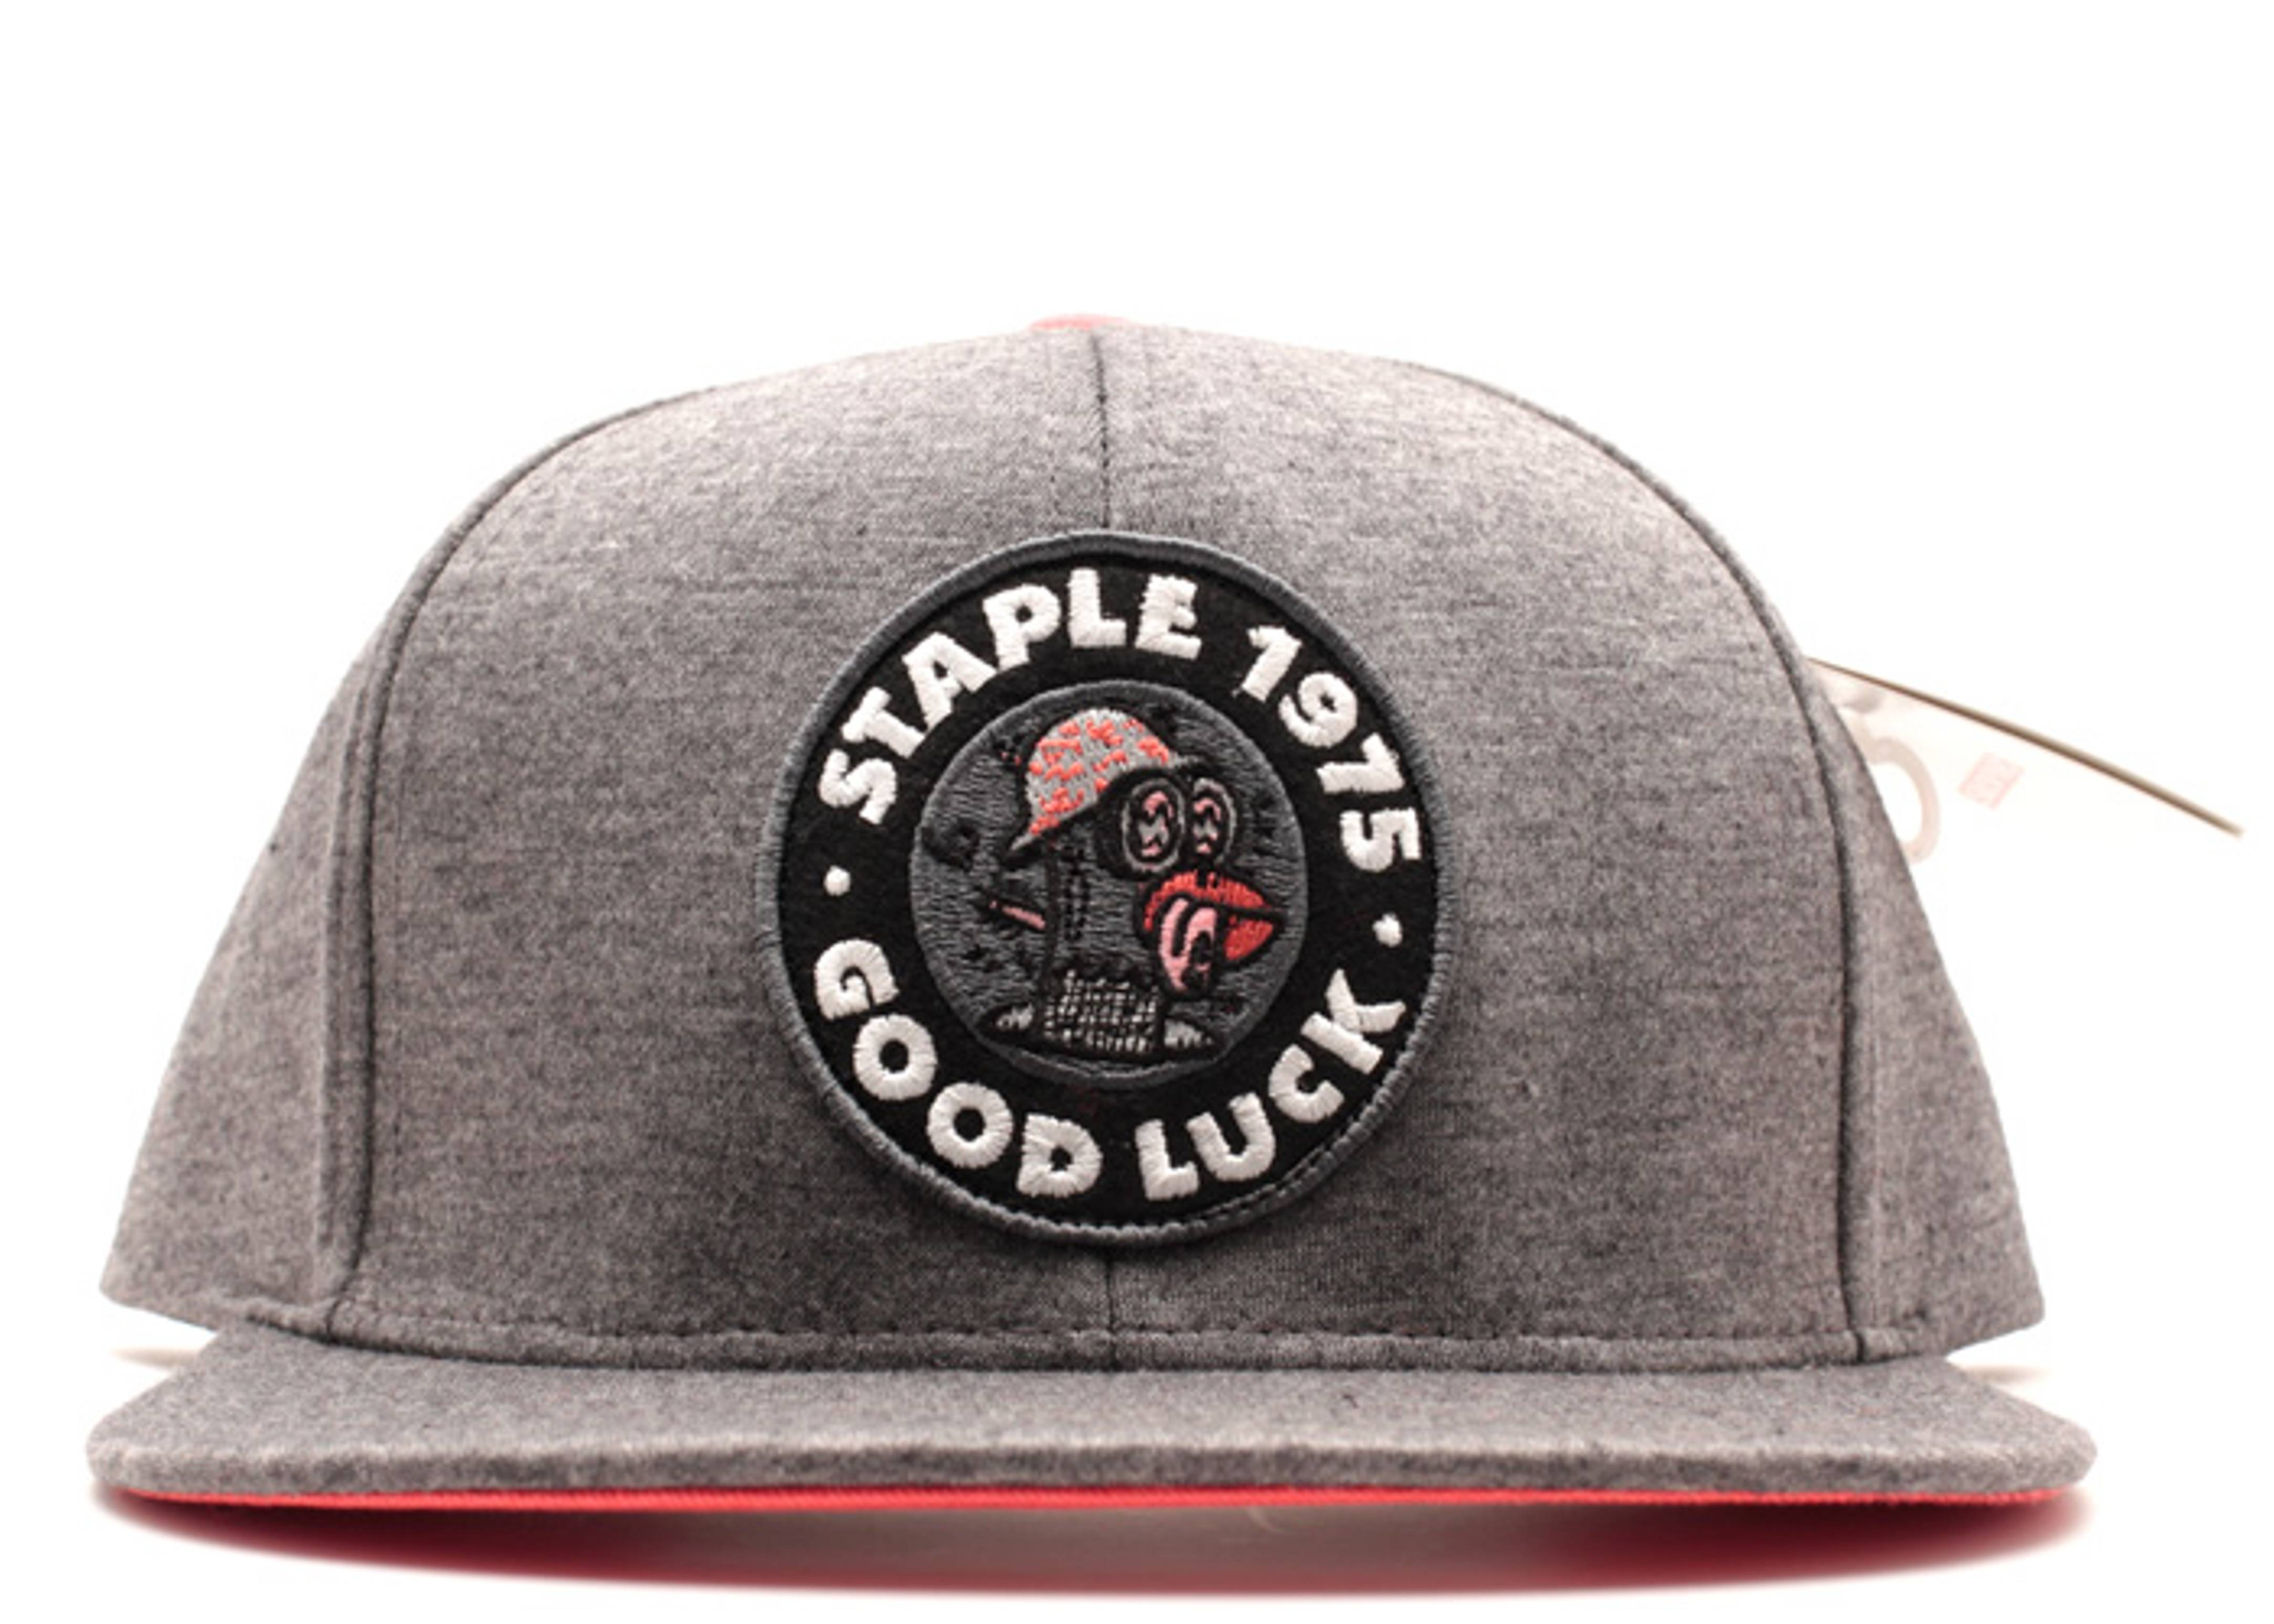 good luck snap-back